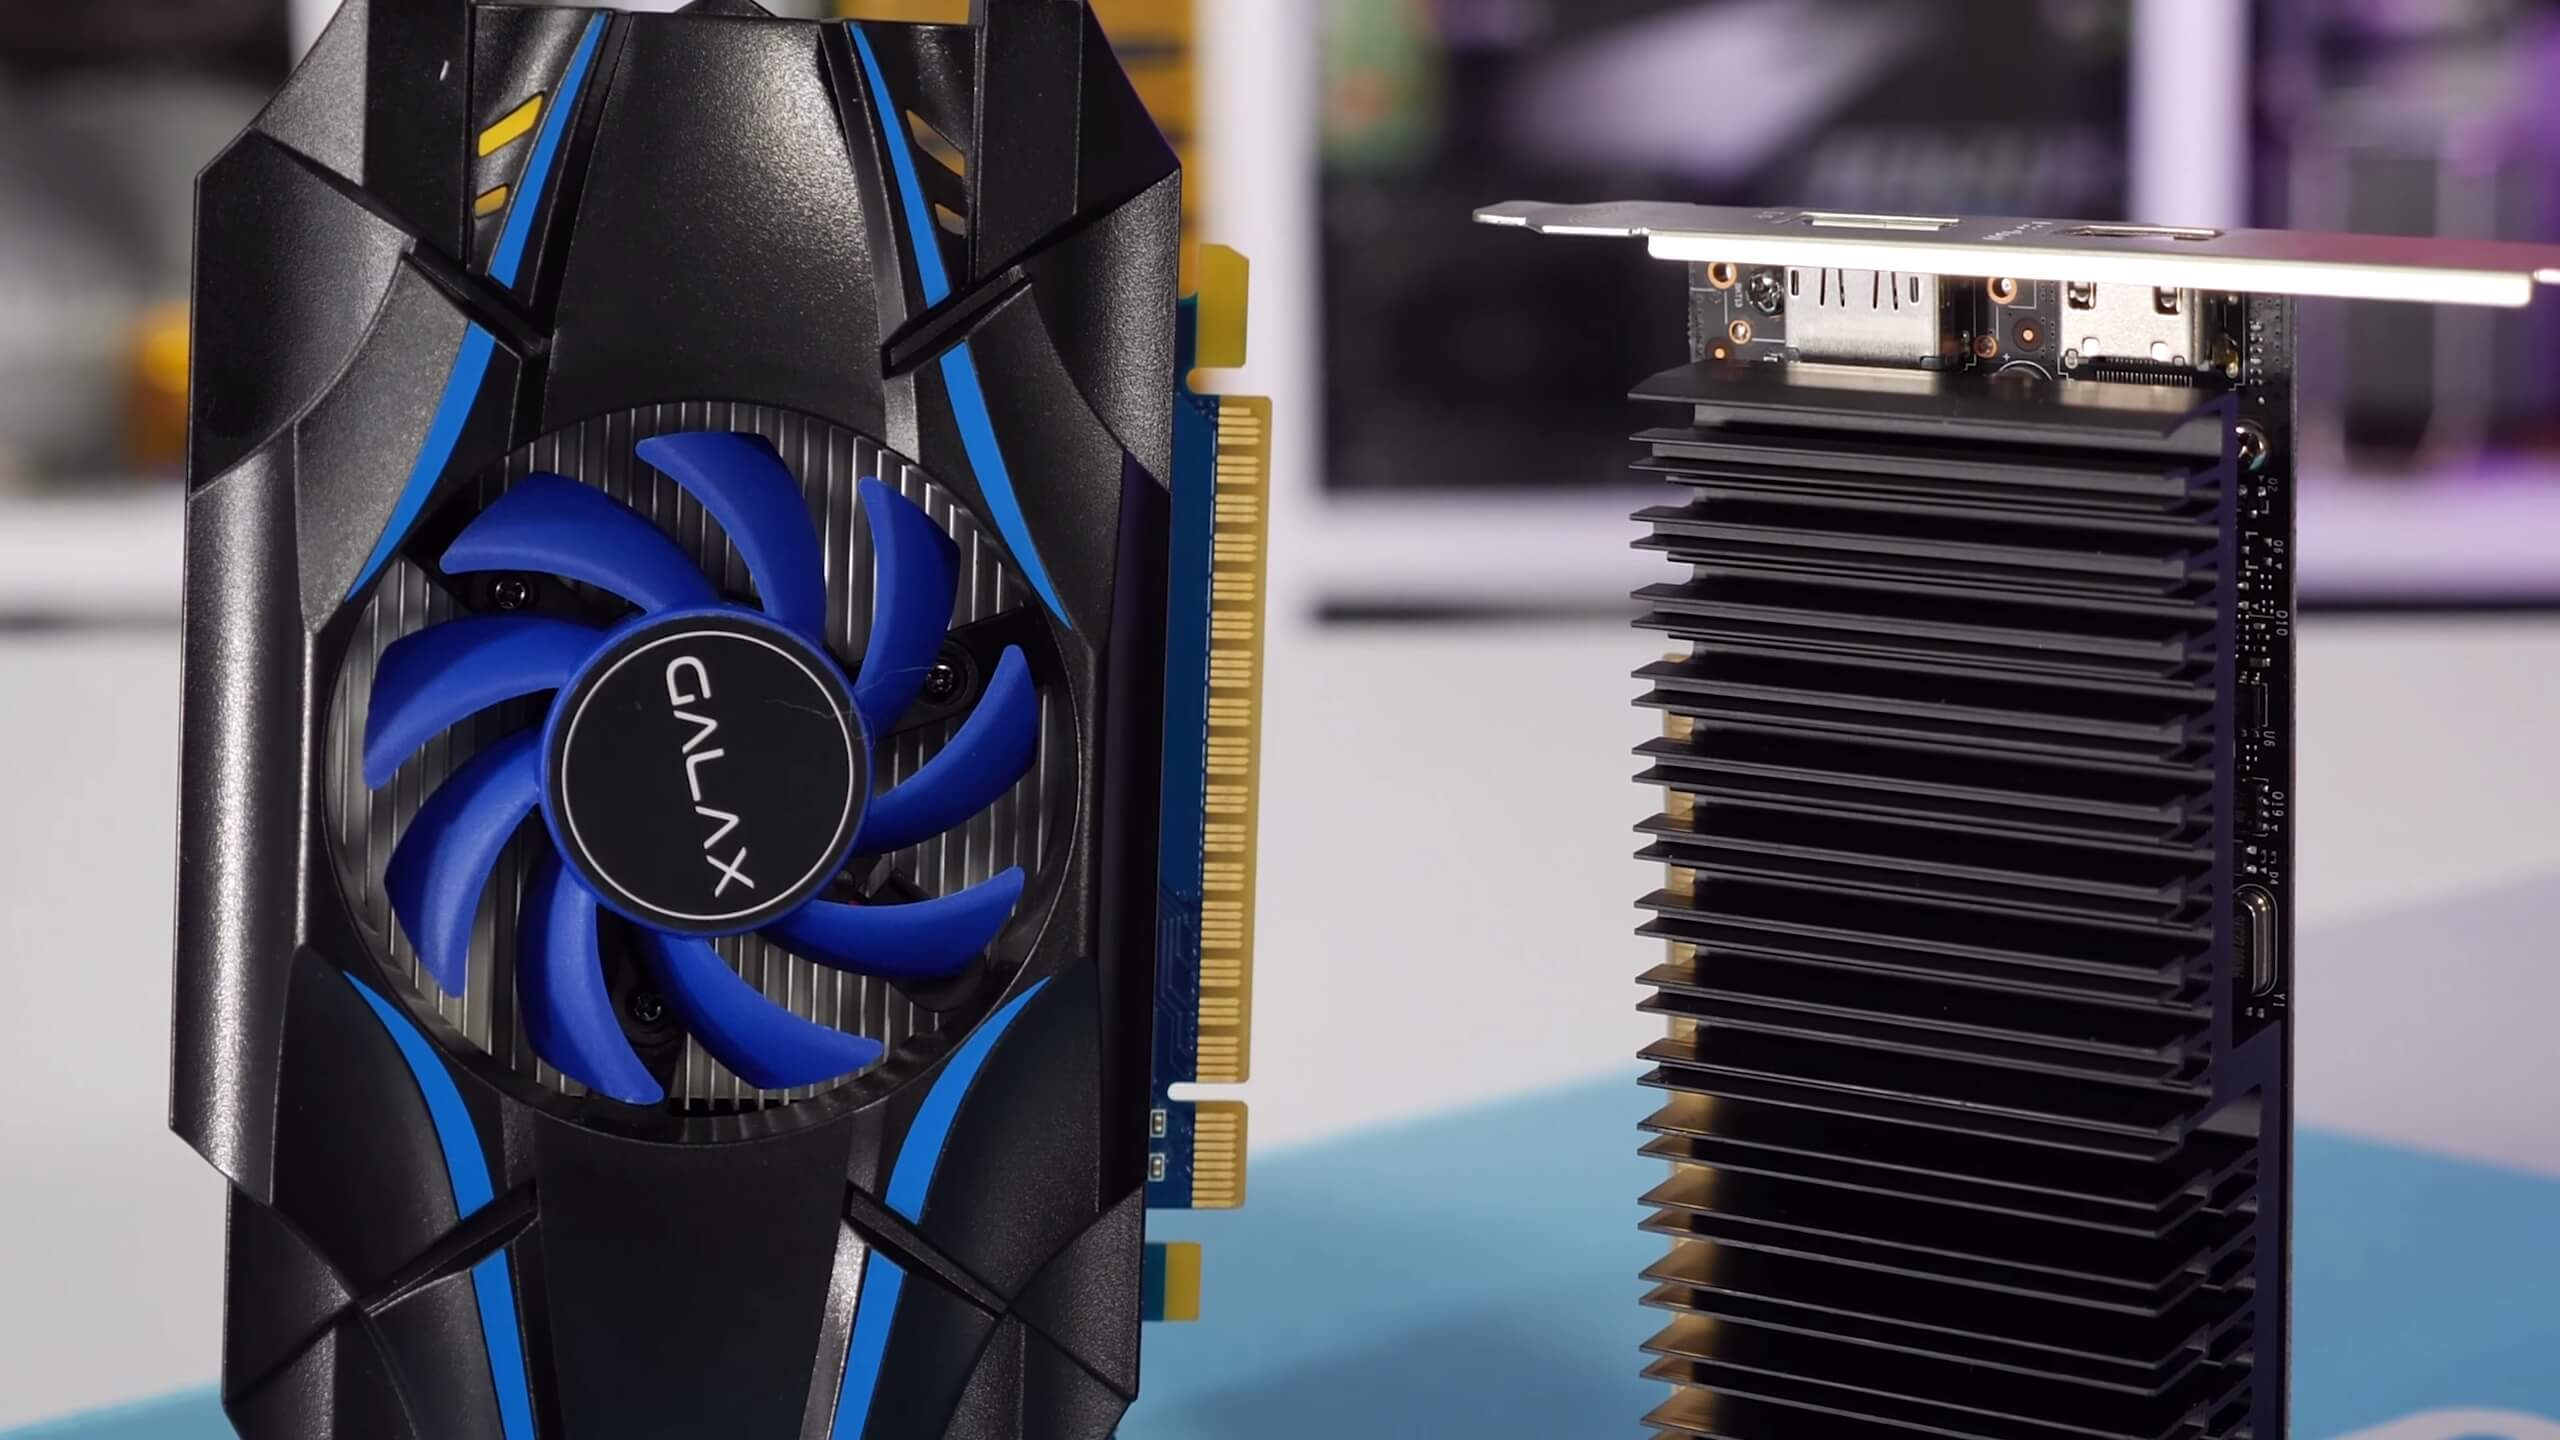 Geforce Gt 1030 The Ddr4 Abomination Benchmarked Techspot Asus 2gb Well More Than A Year Ago In May 2017 Nvidia Released As Most Affordable Gpu 10 Series